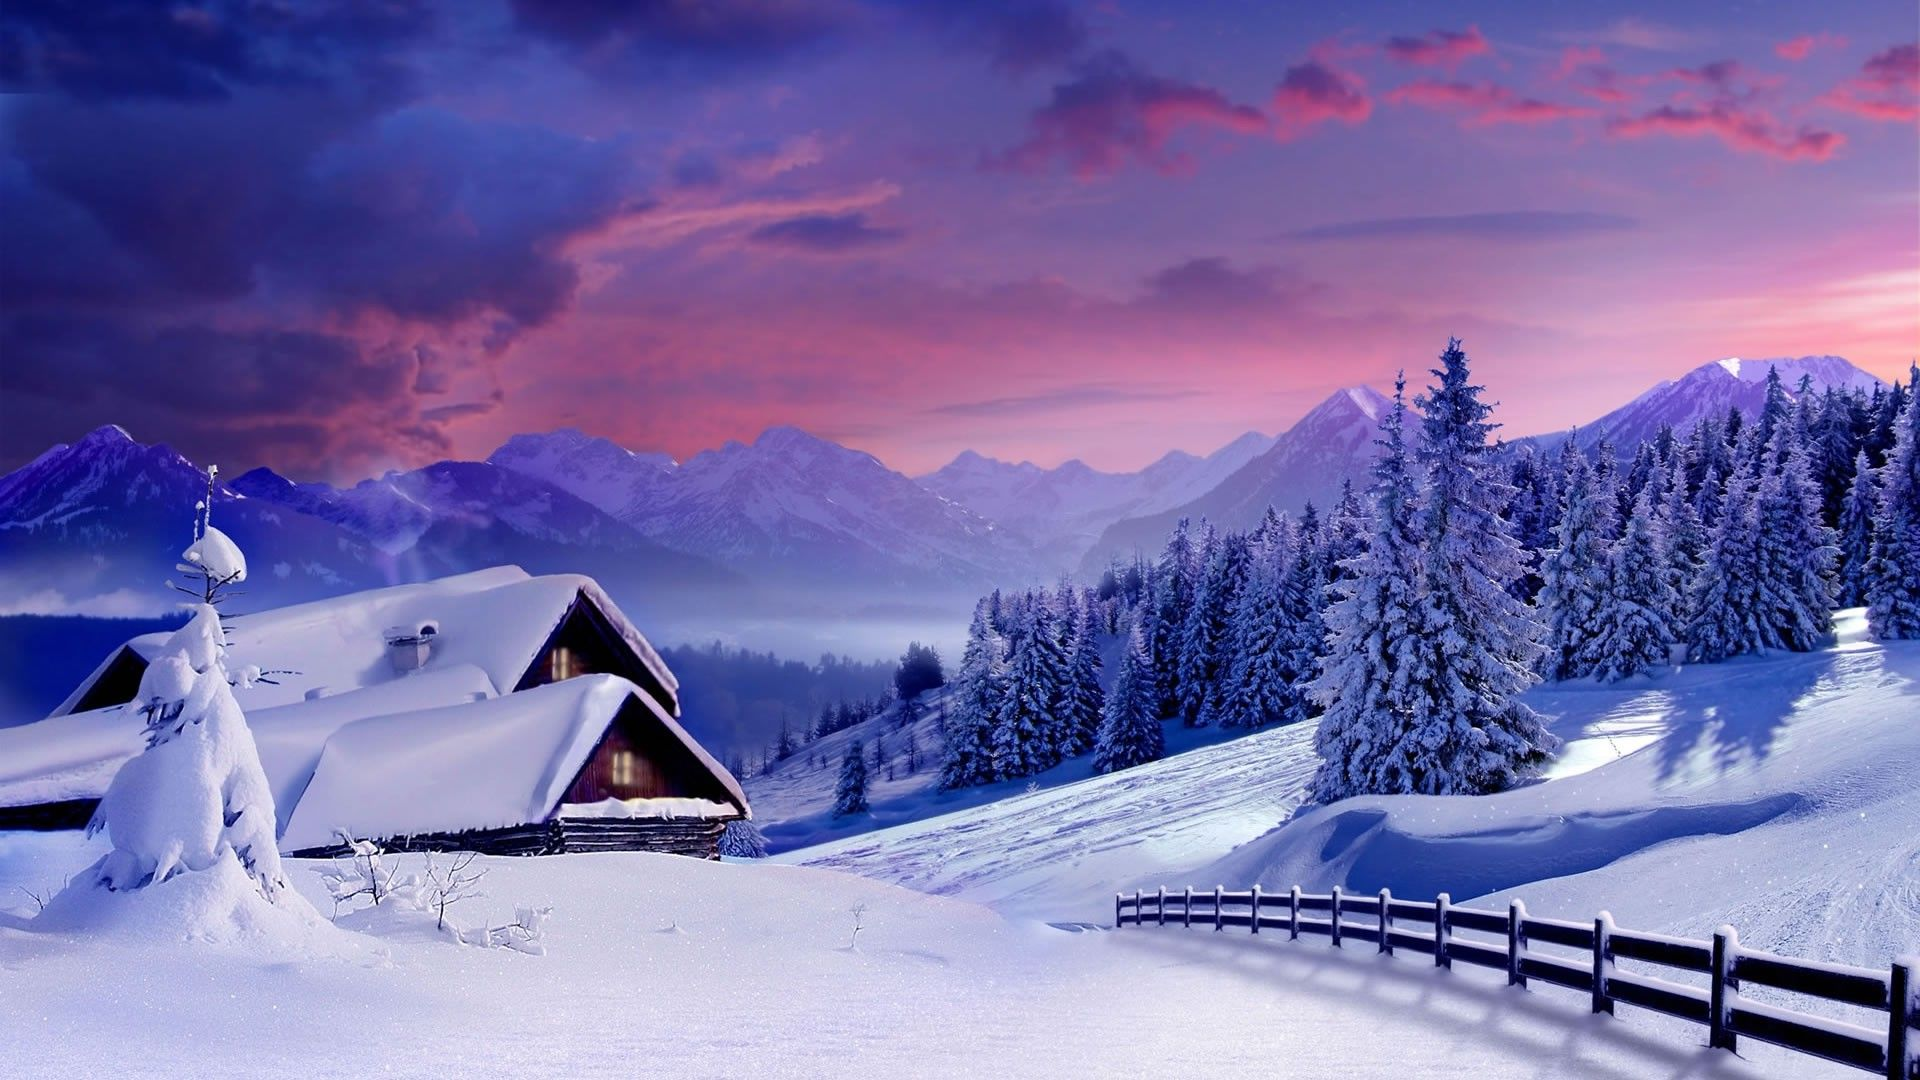 Winter Landscape Wallpaper Full Hd Wallpapers Backgrounds Landscape Wallpaper Landscape Background Winter Landscape